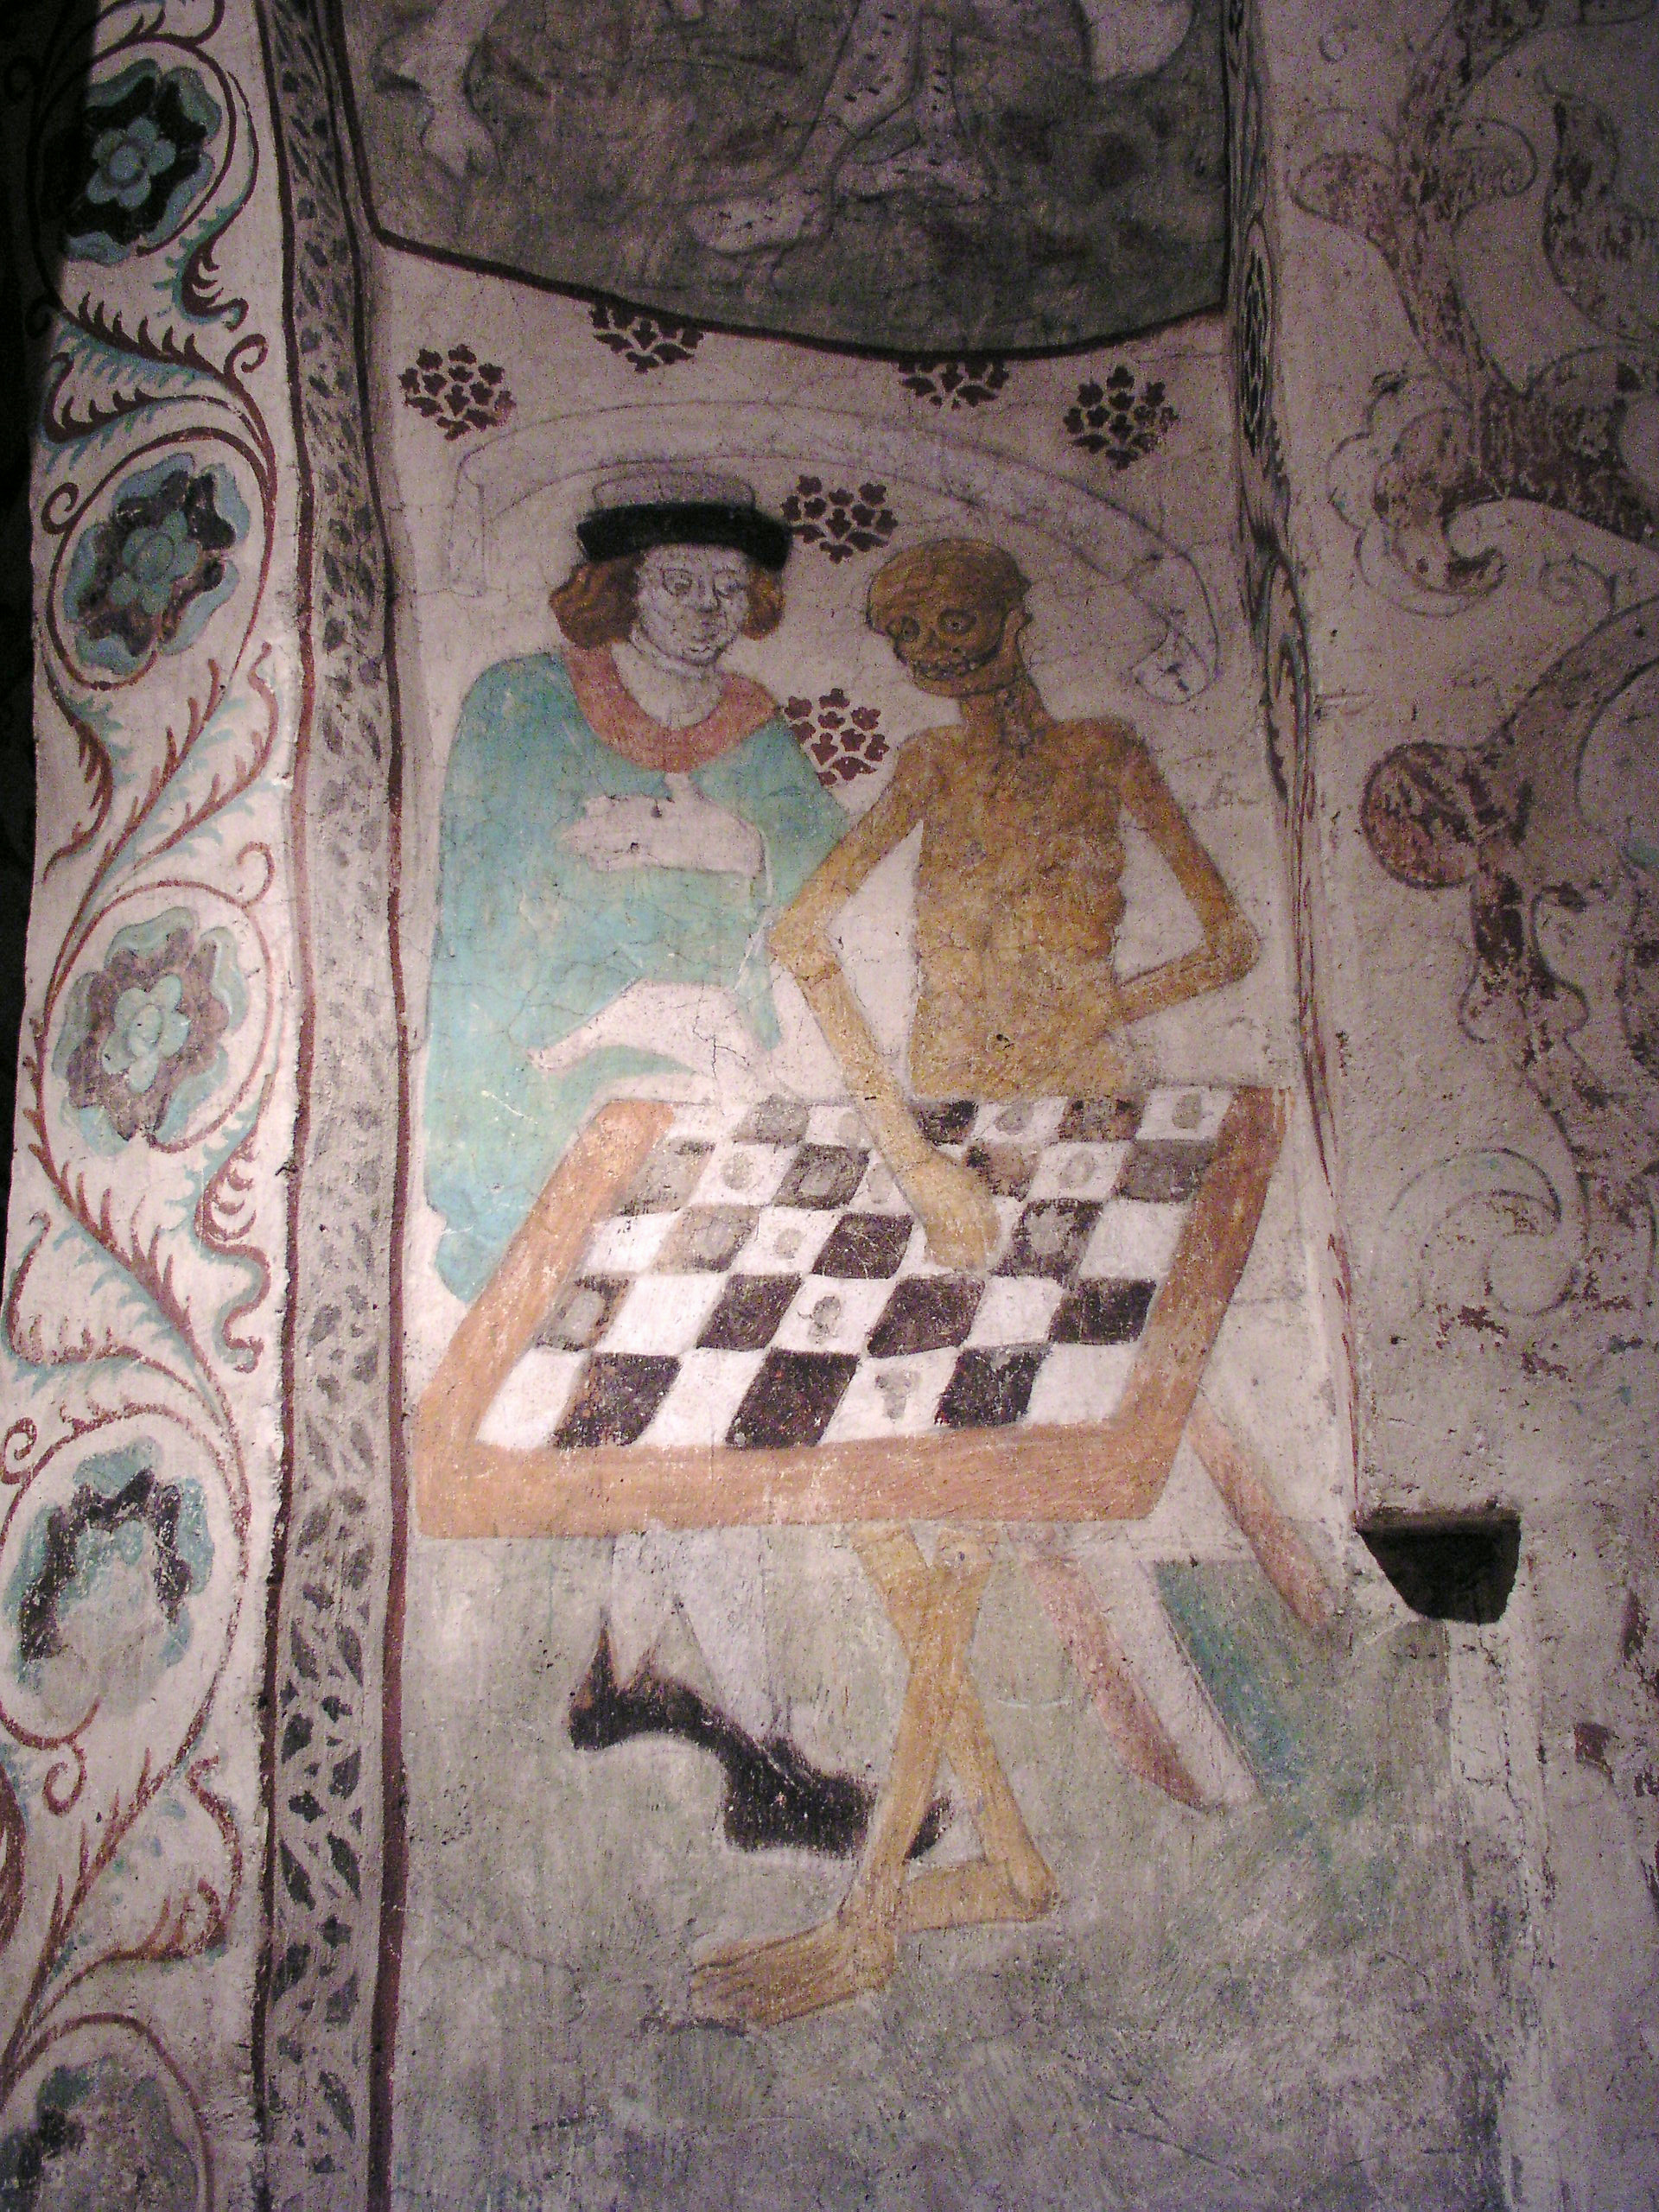 https://upload.wikimedia.org/wikipedia/commons/0/0b/Taby_kyrka_Death_playing_chess.jpg